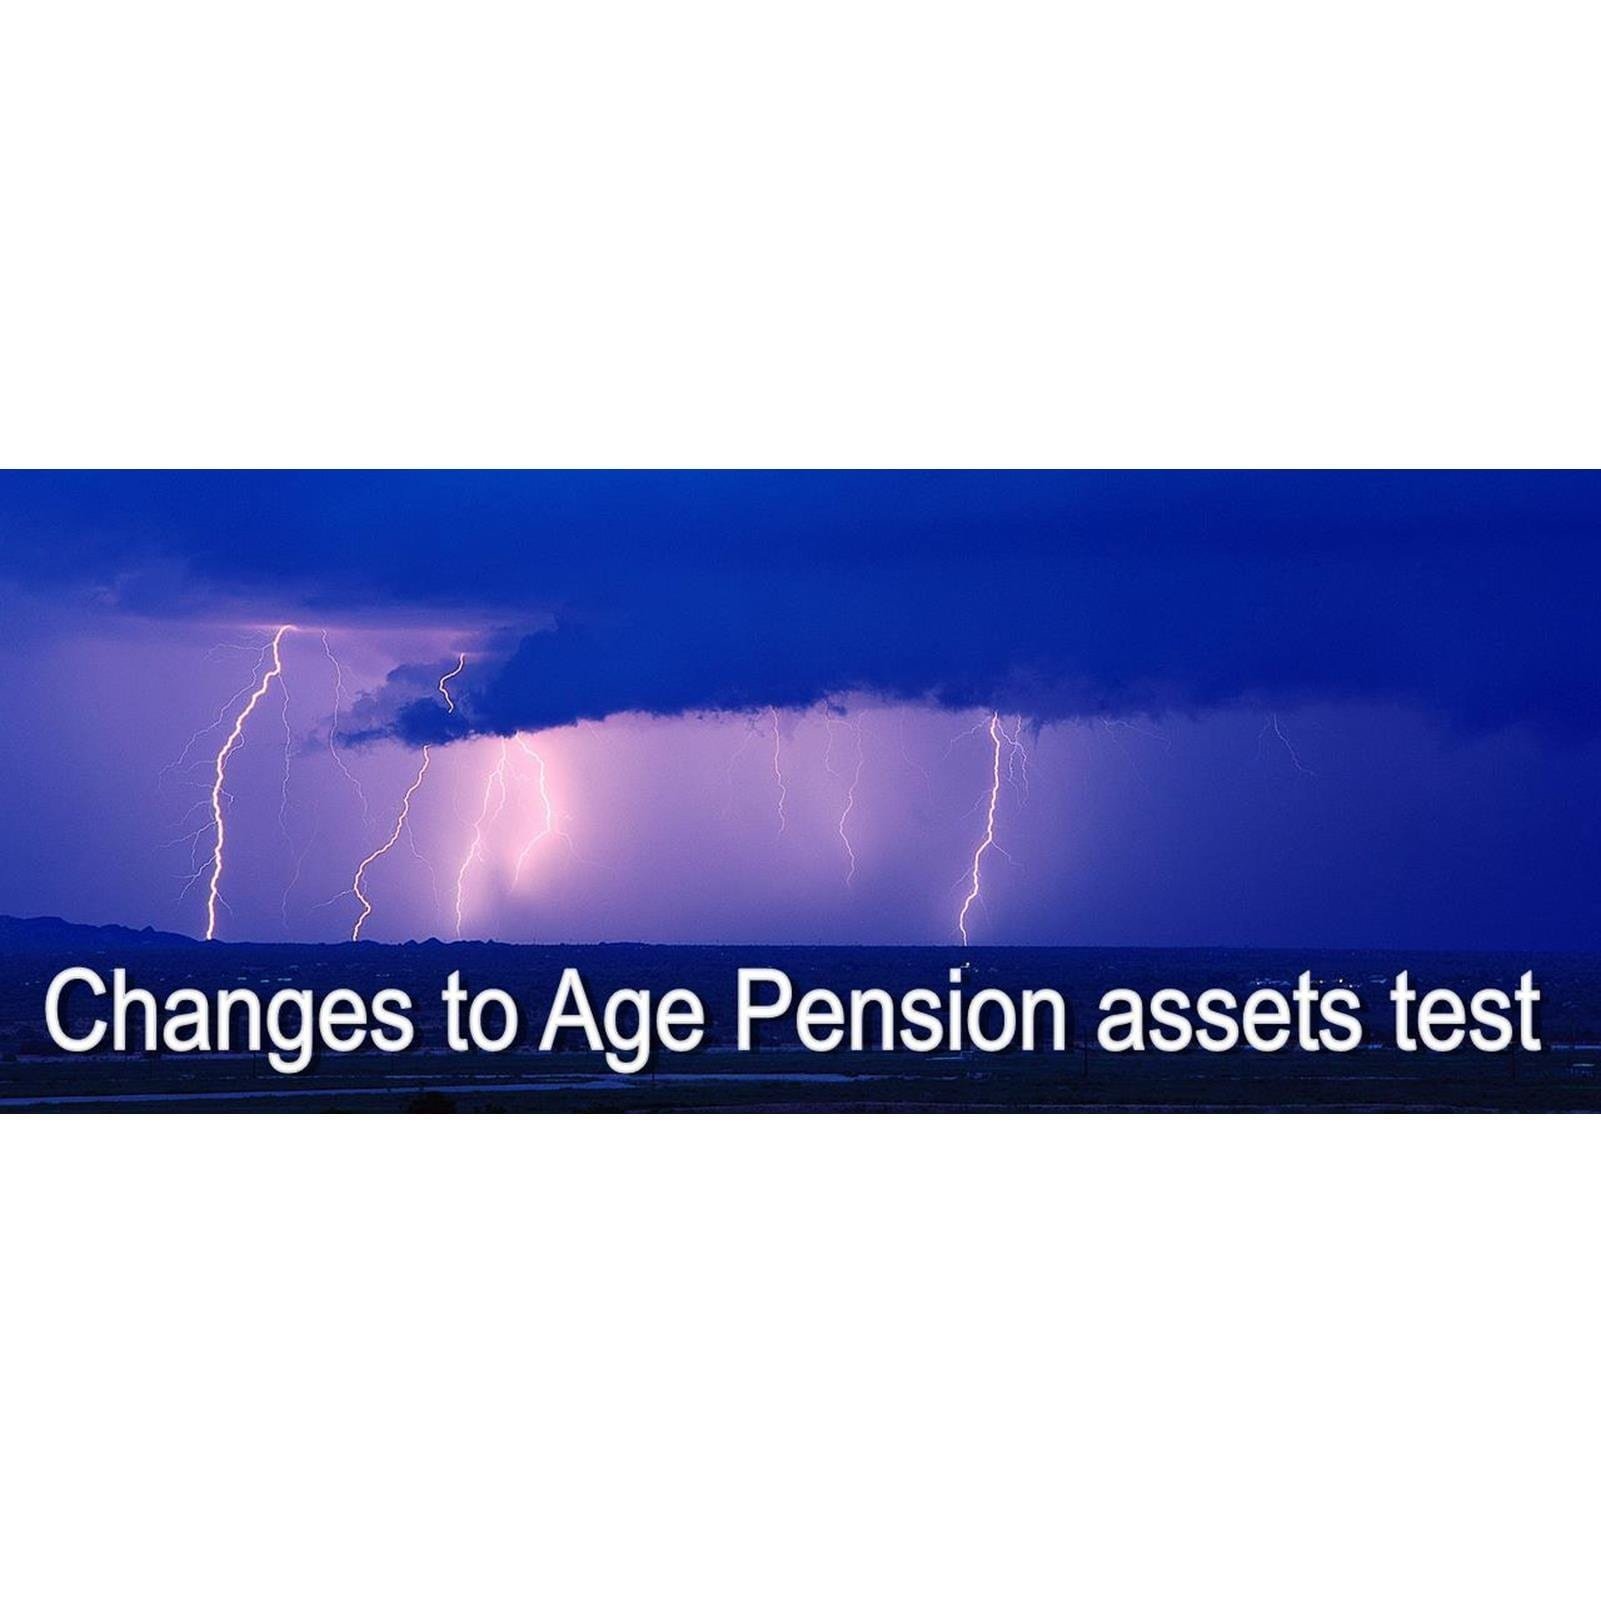 Changes to Age Pension Assets Test